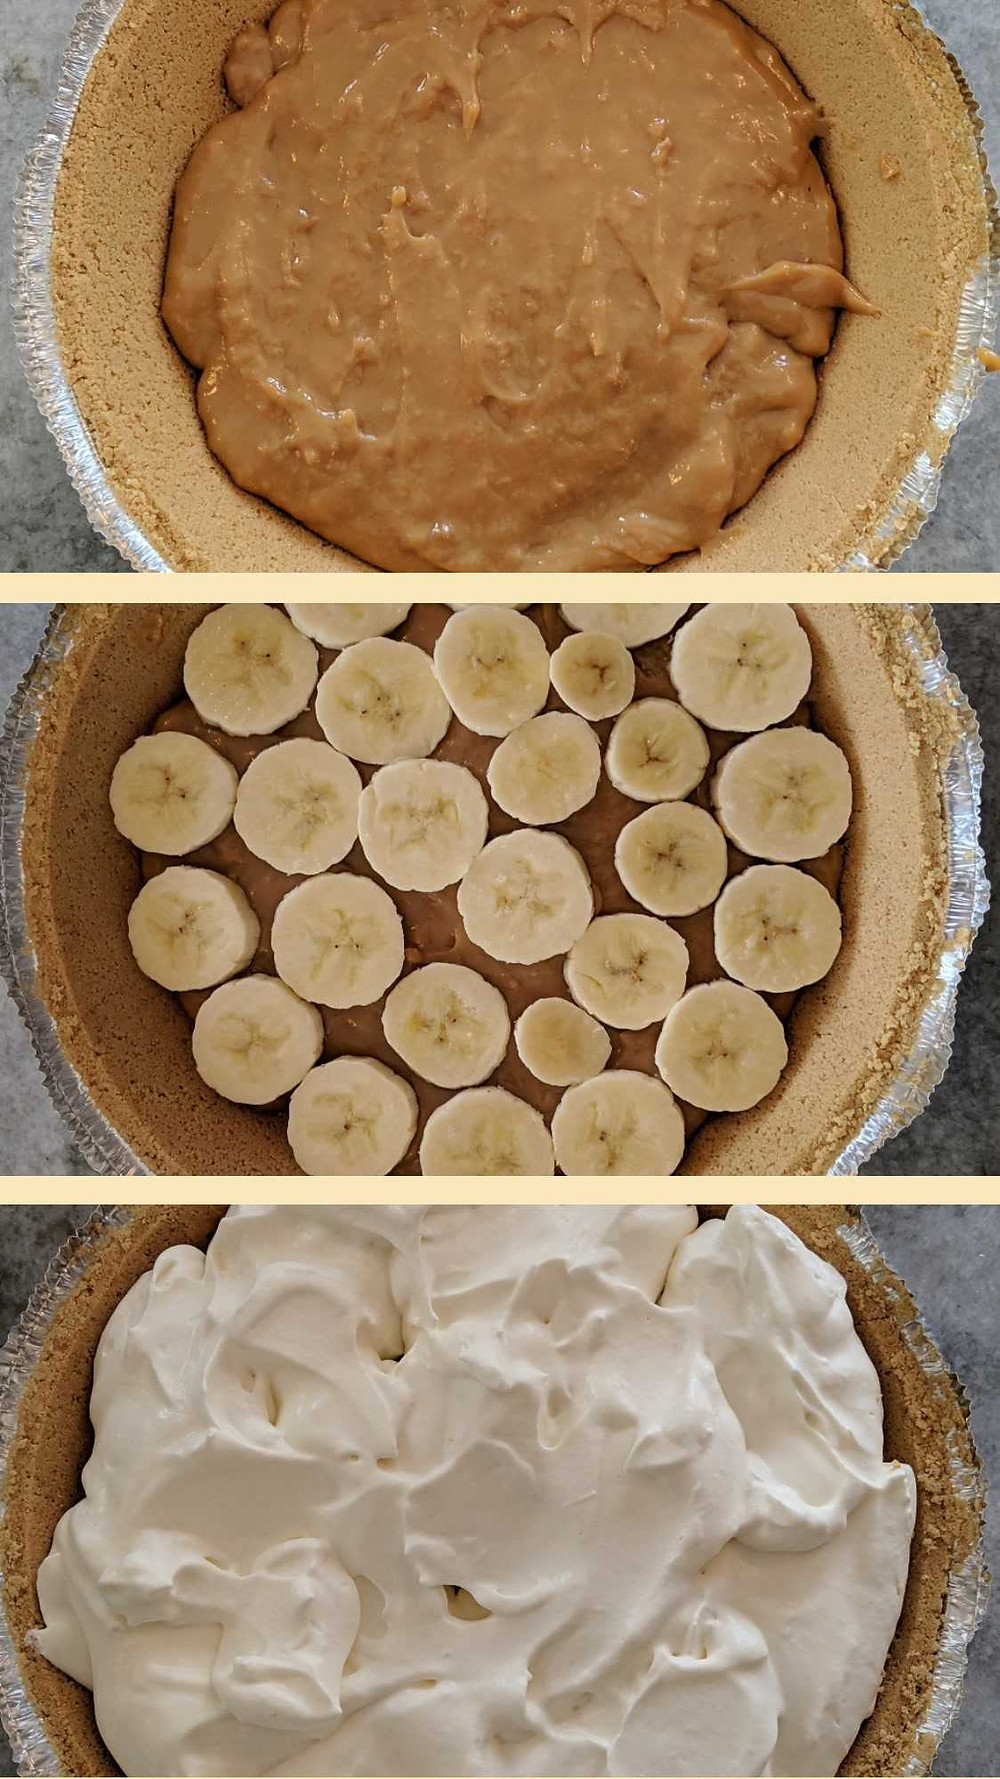 Banoffee pie recipe to make in a science classroom.